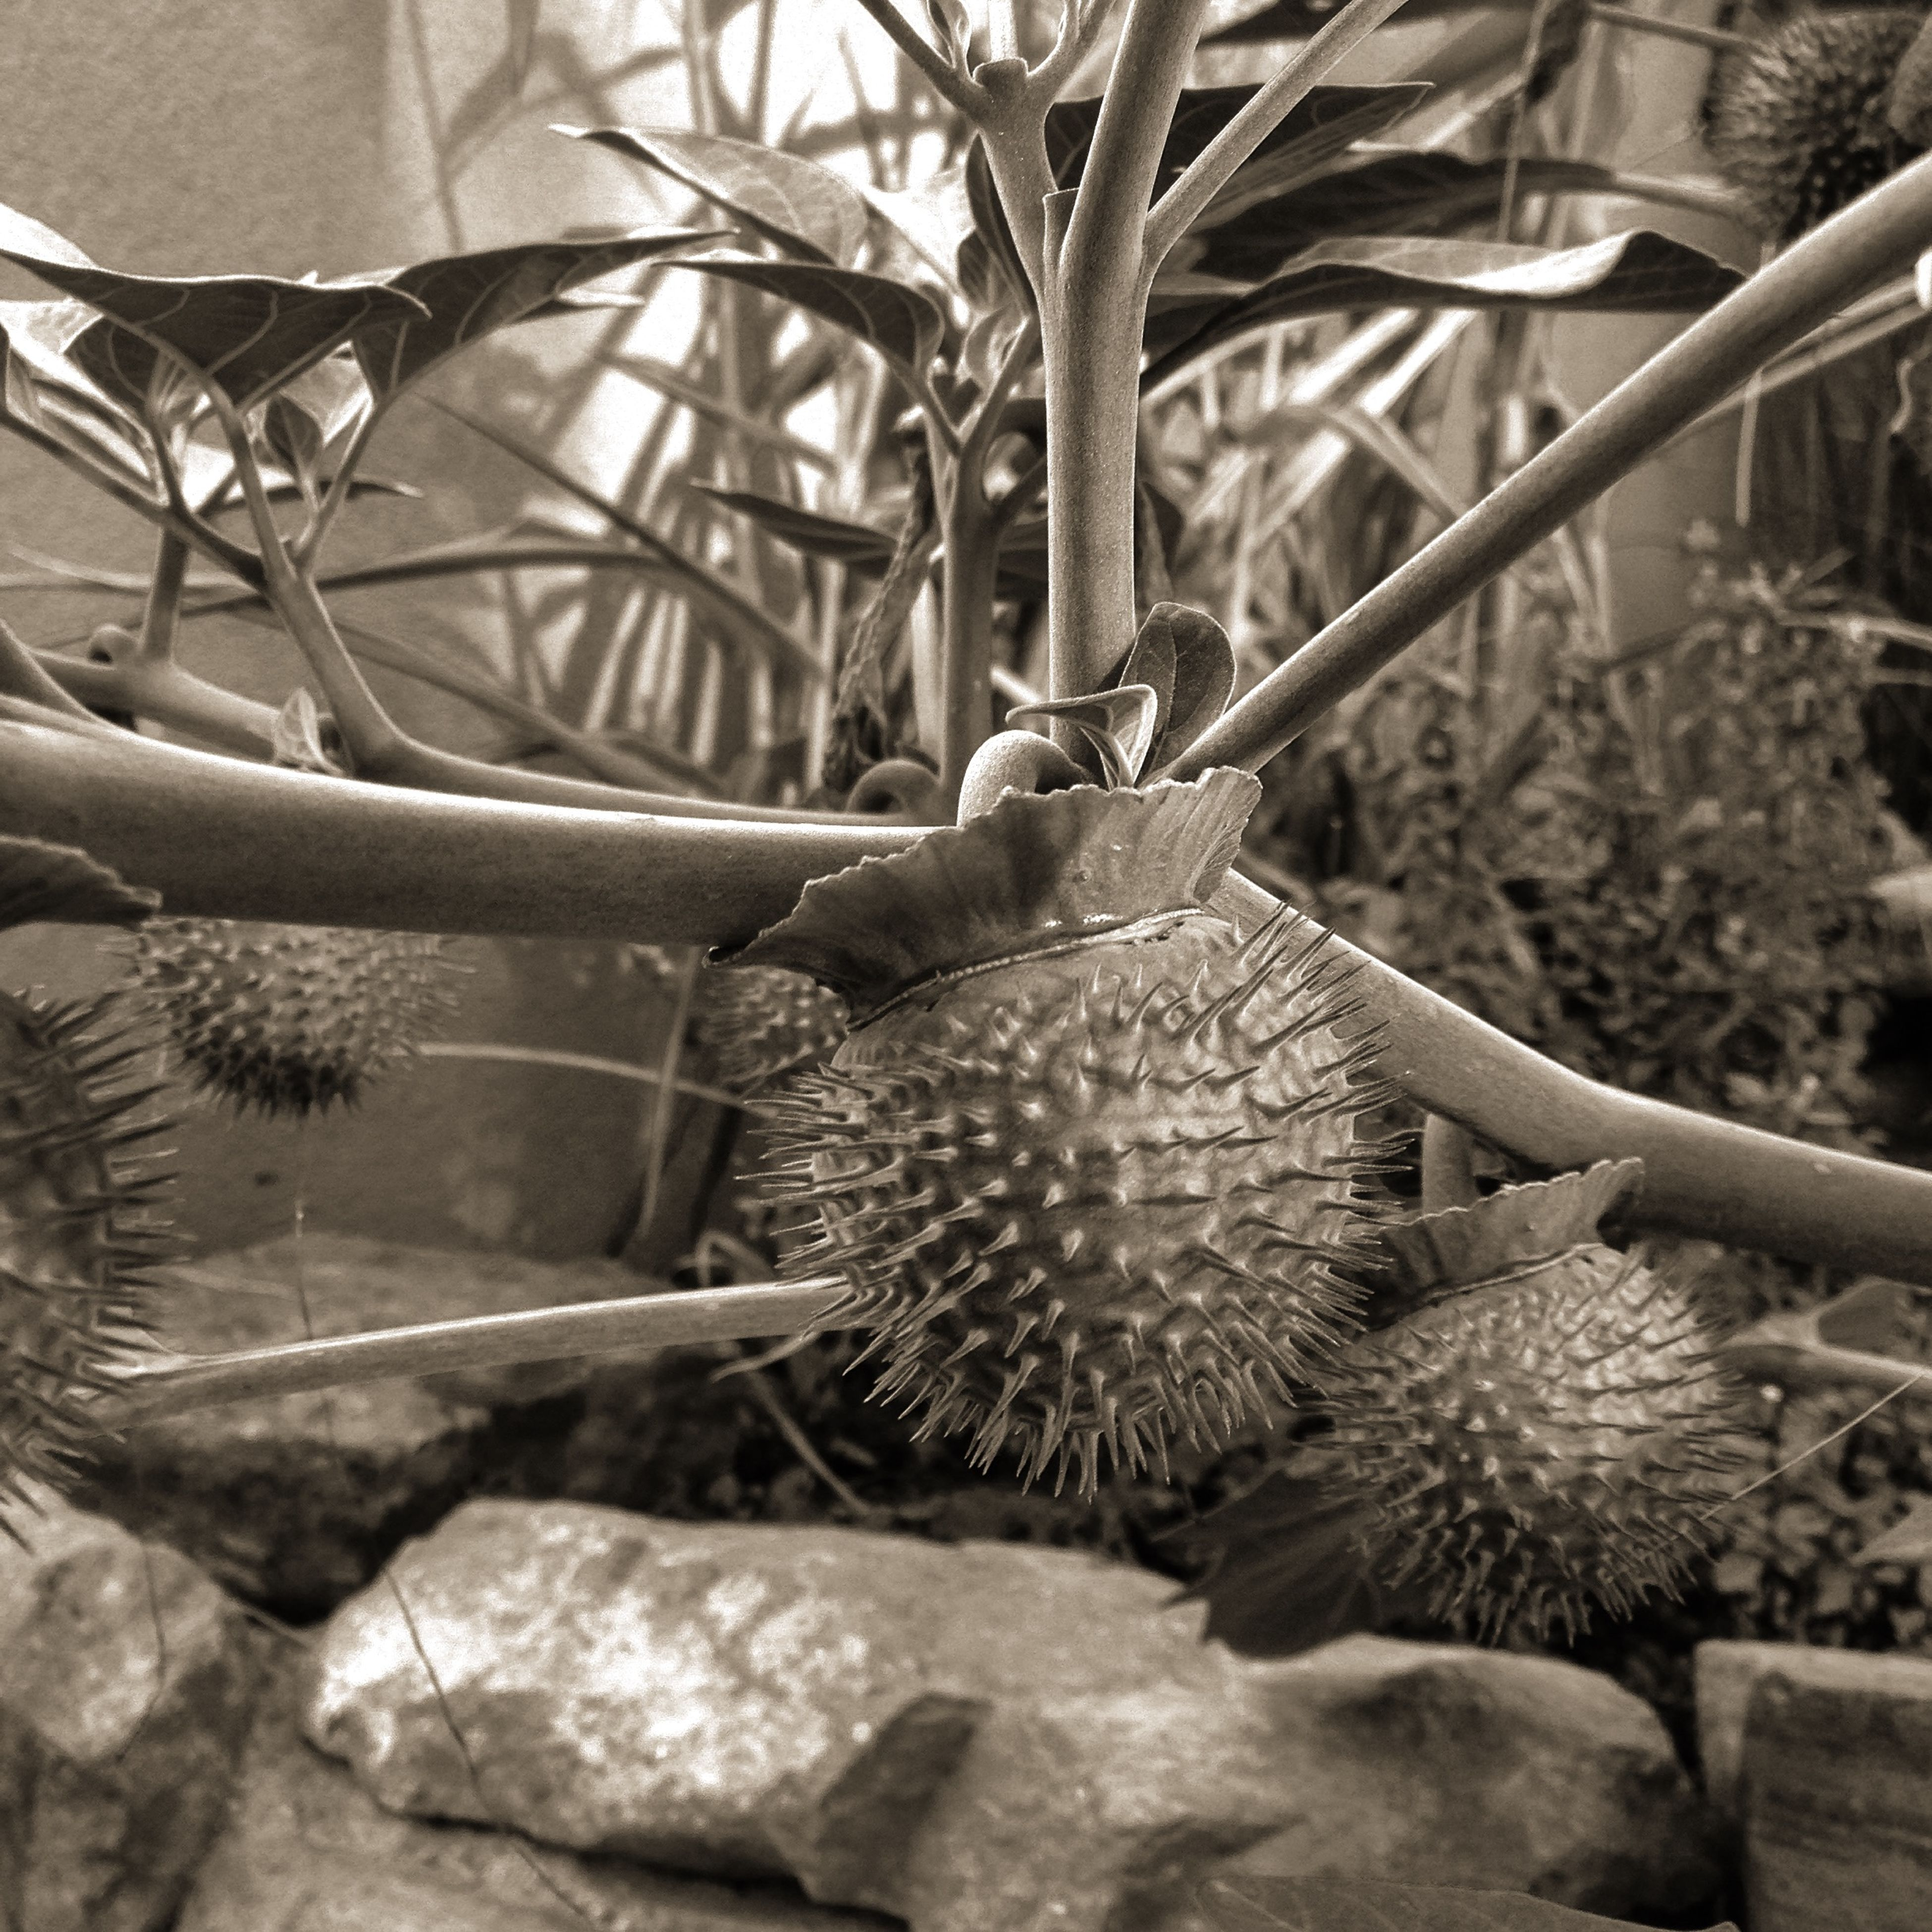 close-up, day, no people, plant, sunlight, outdoors, high angle view, nature, metal, potted plant, focus on foreground, freshness, still life, basket, flower, cactus, stone - object, animal themes, growth